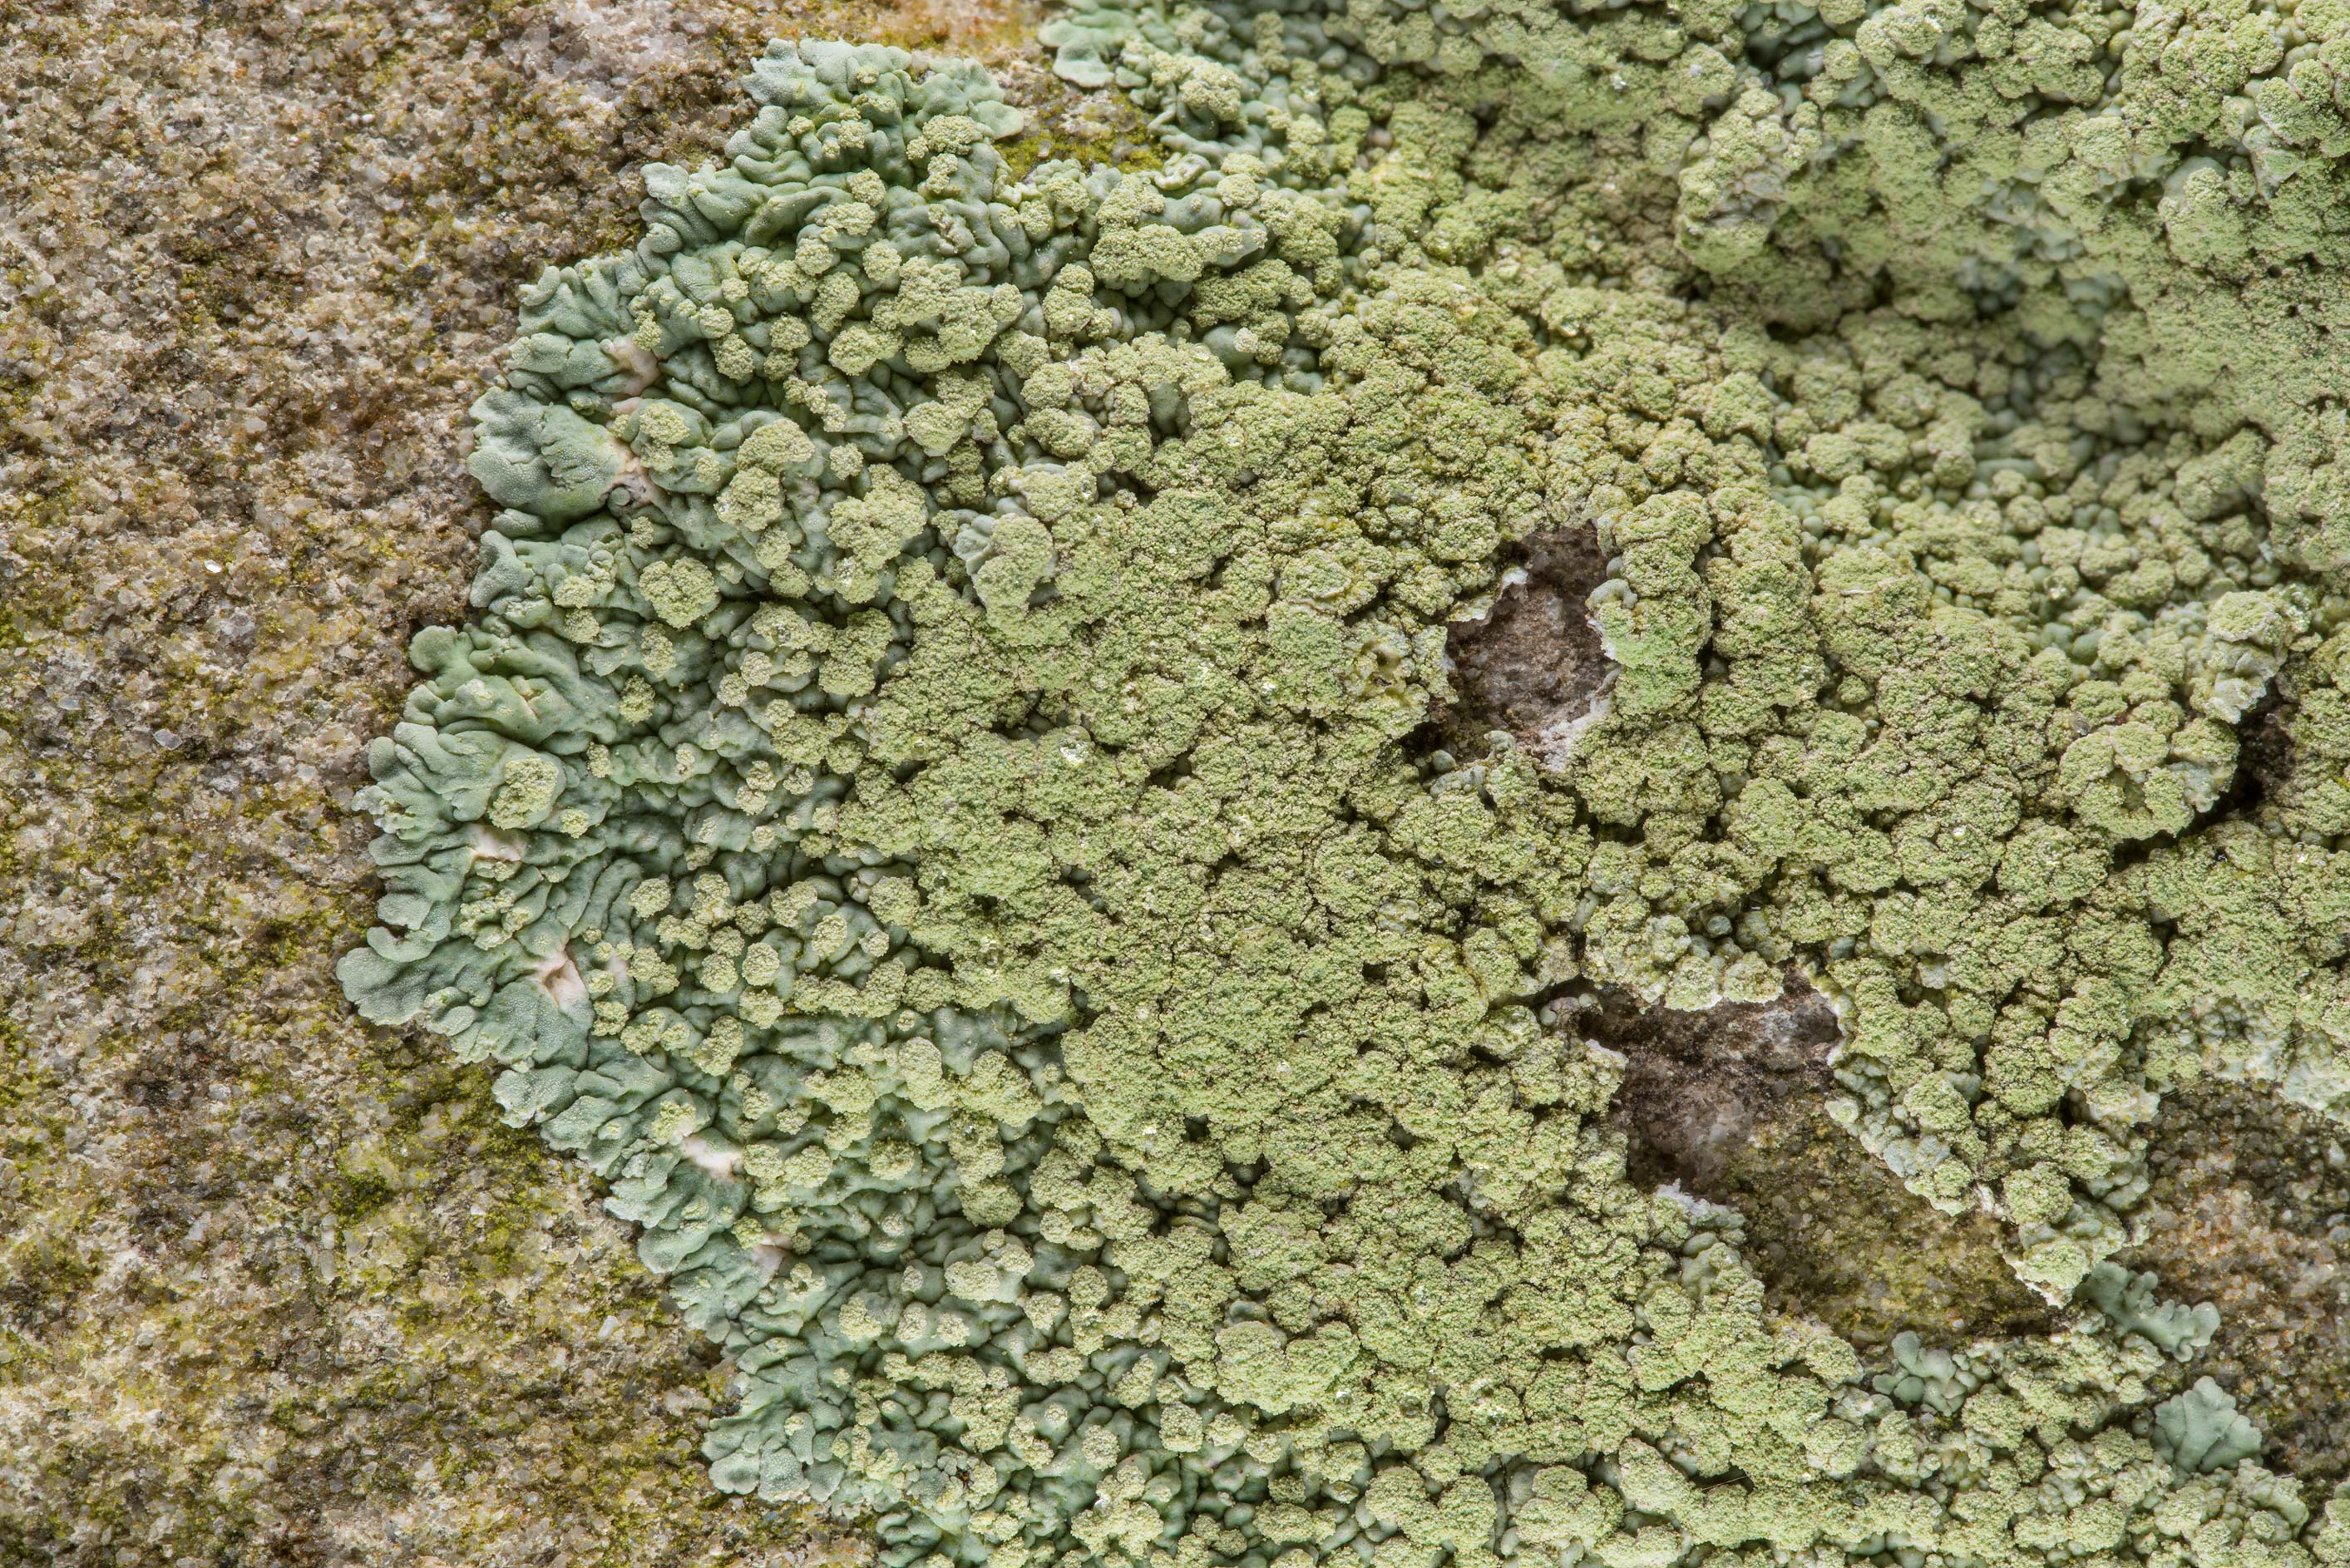 Greenish buttoned rosette lichen (Pyxine) on a...Cemetery near Independence. Texas